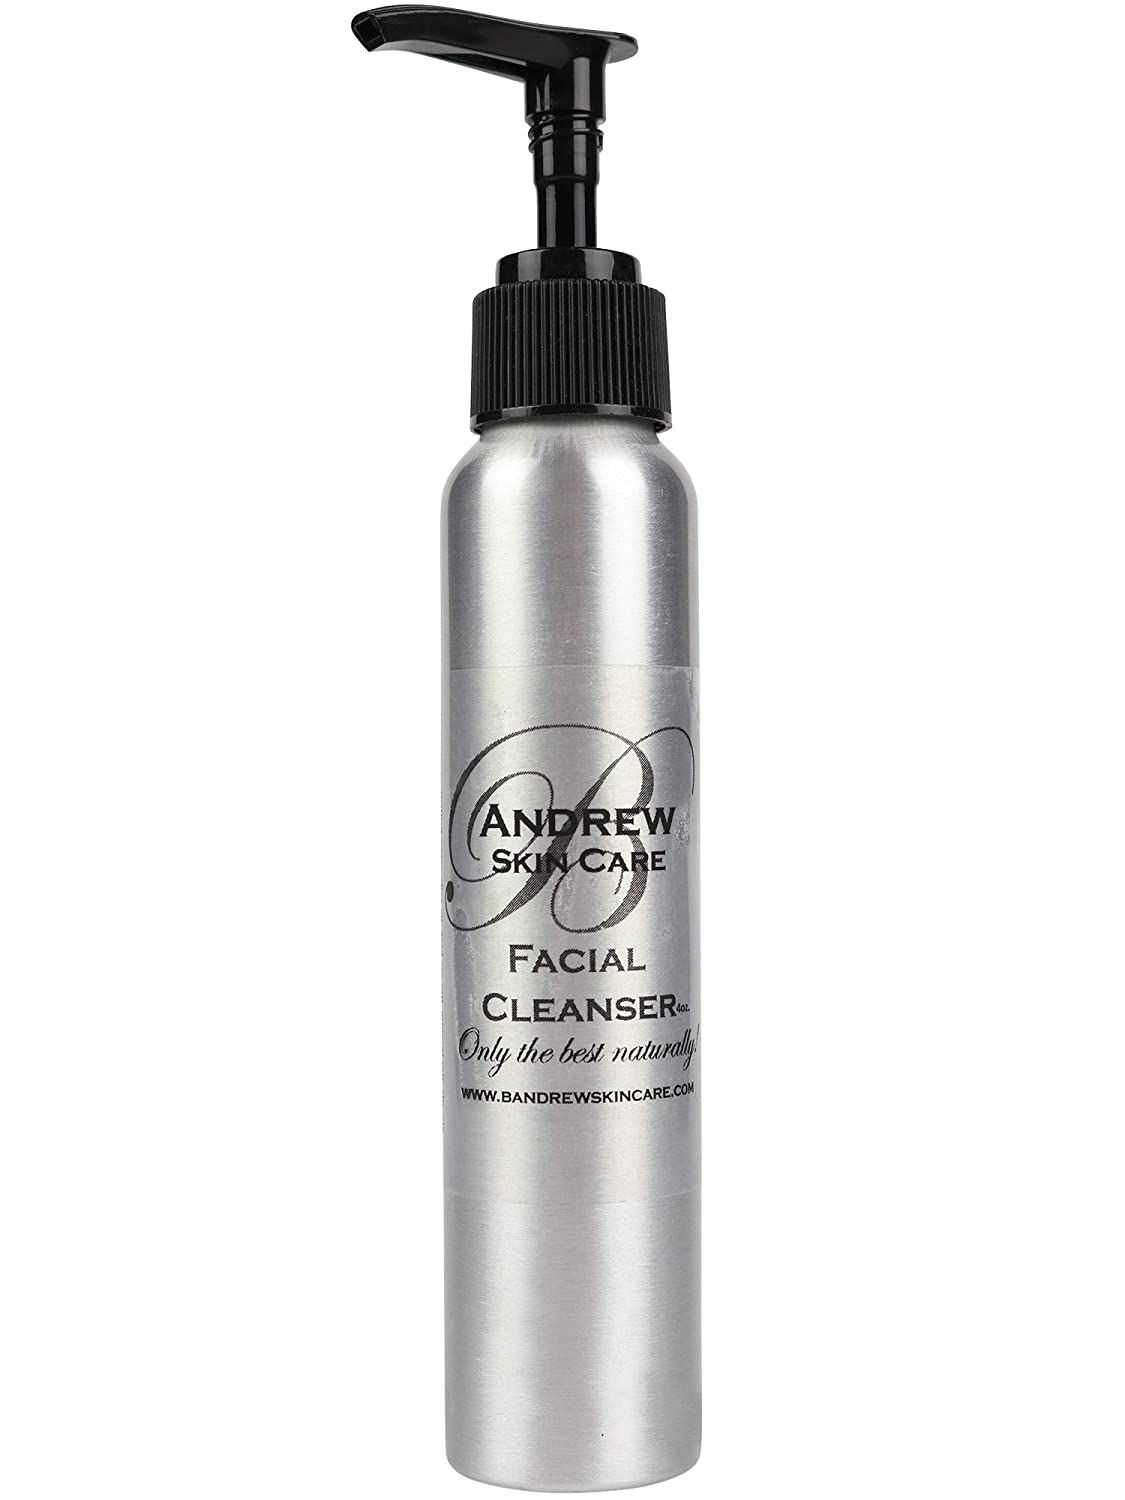 B Andrew Organic Skin Care - Facial Cleanser, Anti Aging, Exfoliating, Acne Face Wash - With Vitamin C, Rosehip Oil, Tea Tree, Grapefruit Seed, and Chamomile